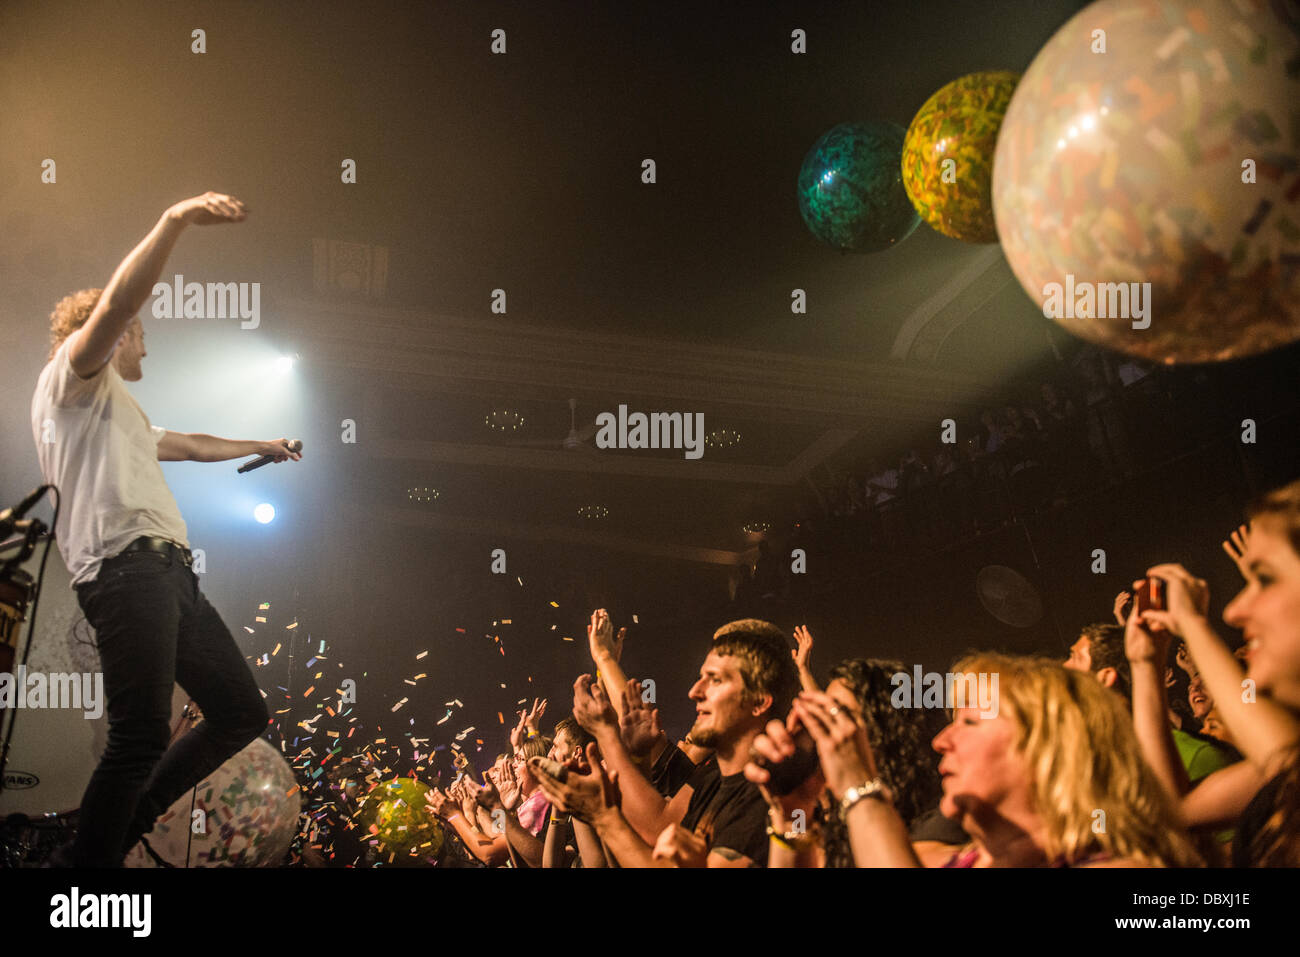 Imagine Dragons performing live at Metro in Chicago, IL - Stock Image